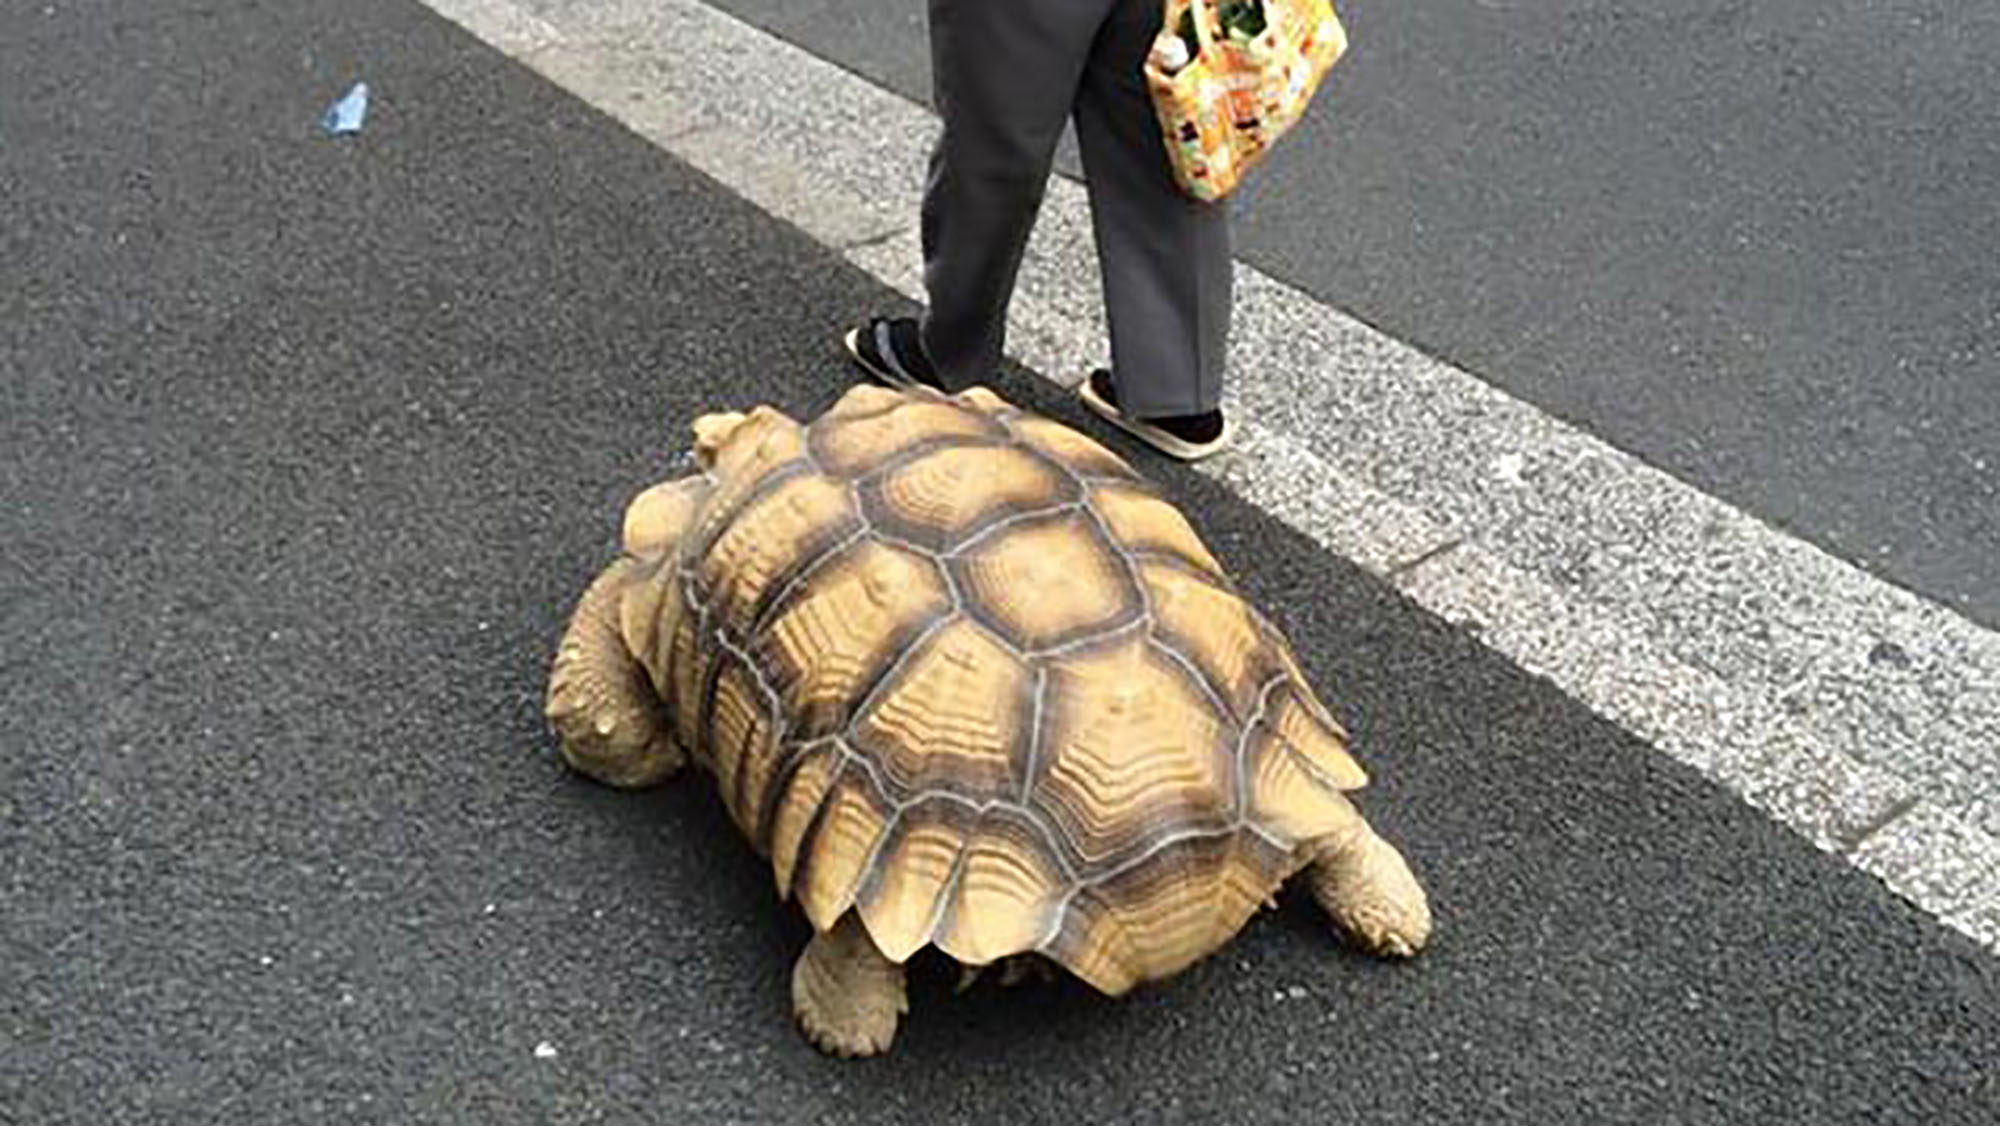 The world's most patient pet owner walks his giant tortoise everyday